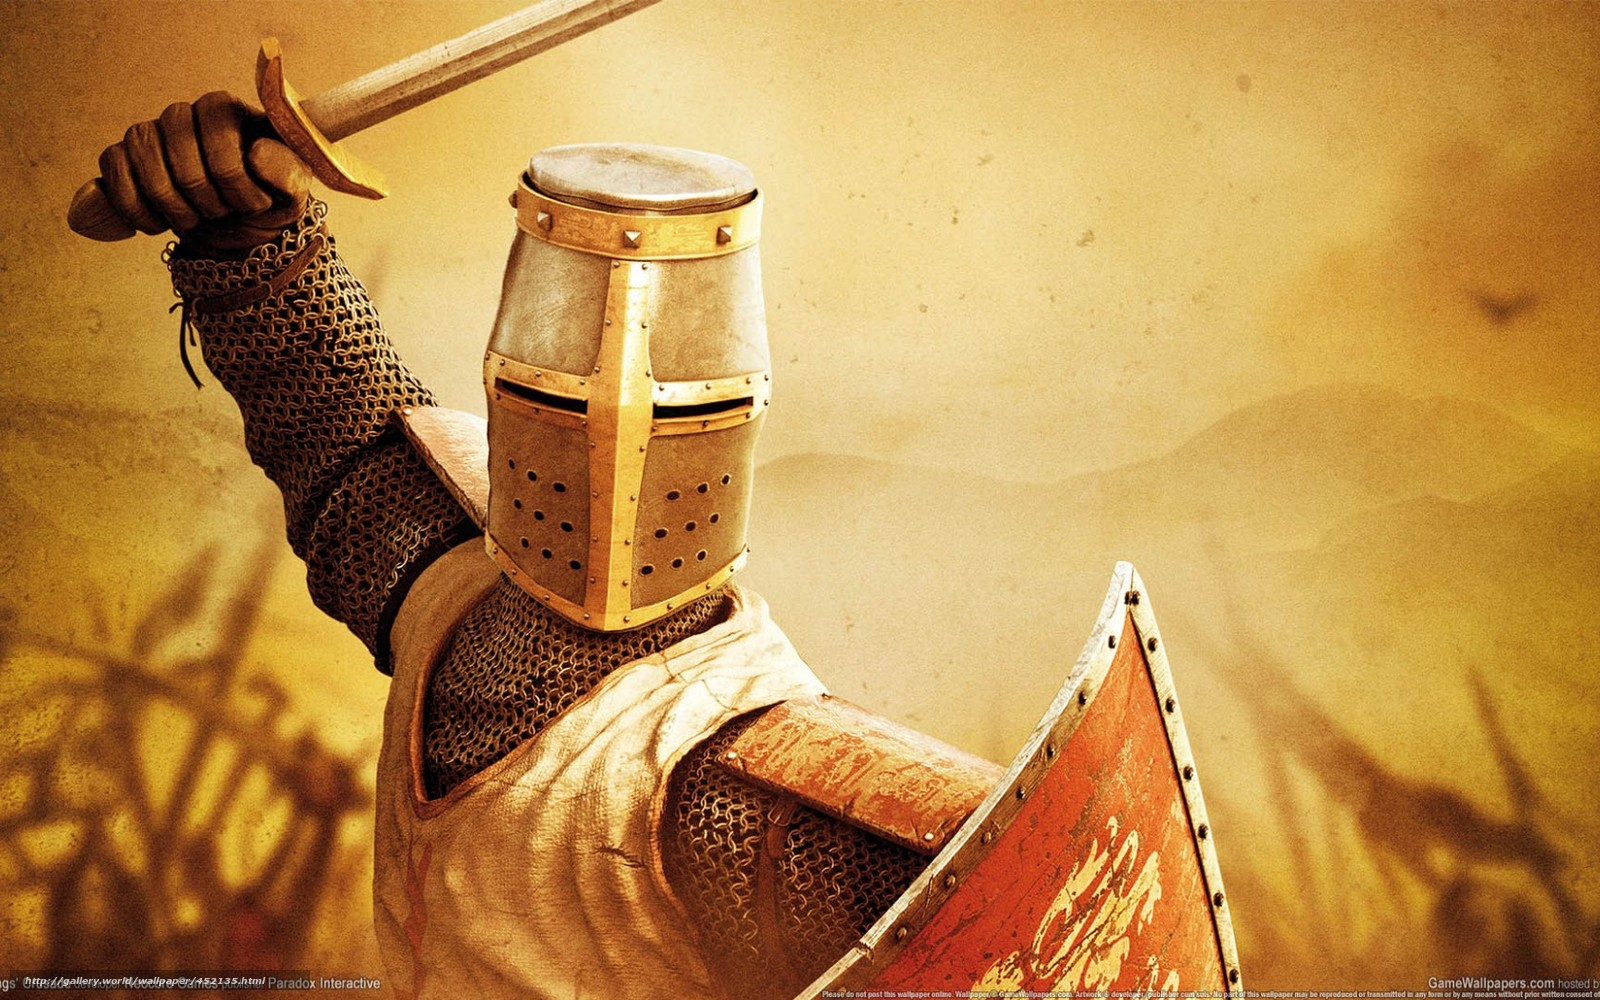 Download Wallpaper Knight Shield Sword Crusader Free Desktop In The Resolution 1680x1050 Picture No452135